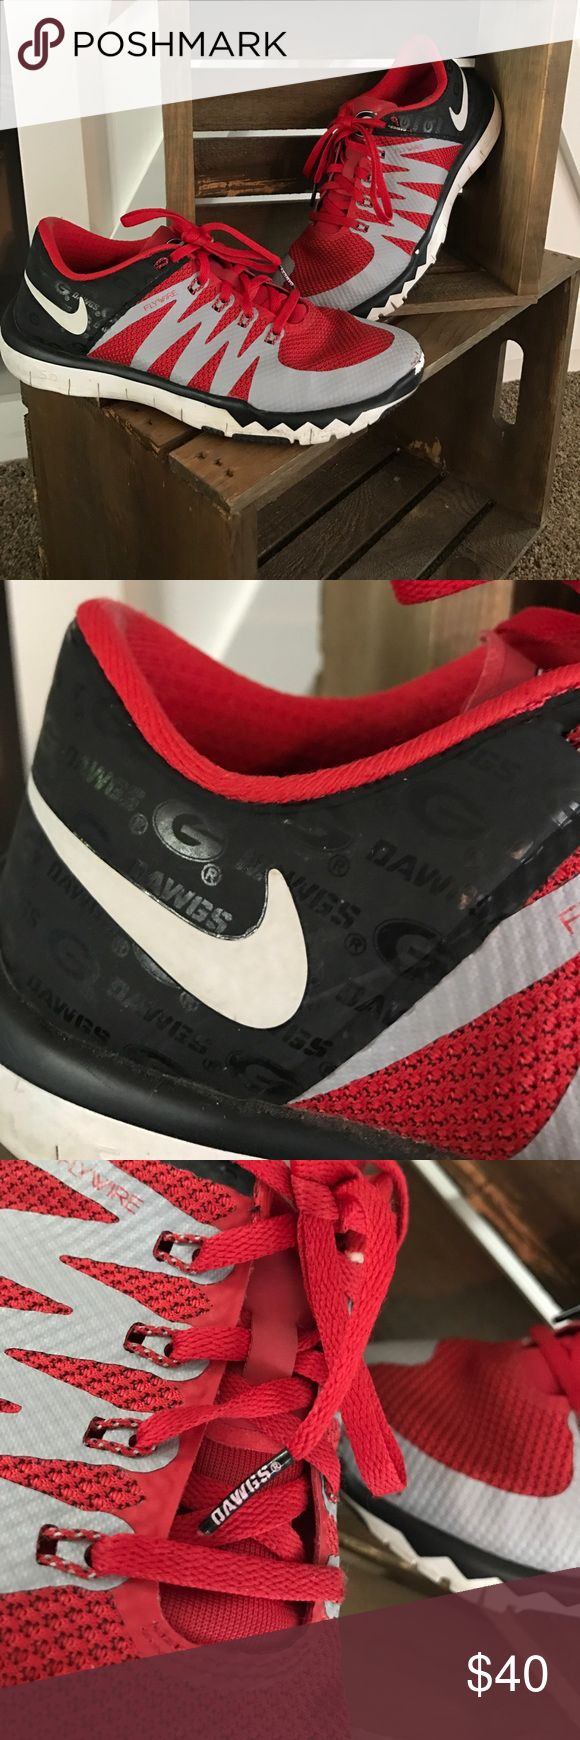 Nike Flywire 5.0 UGA shoes.Size 6.5 boys 7.5 women UGA Nike shoes. I let me step son wear to school 1 day.... I freaking day and he scuffed them etc. before he wore them I wore than maybe 5-6 times.😖 pics show the marks where he ruined them. Other than the cosmetic stuff you n pics they are like new on bottoms and inside. Nike Shoes Sneakers